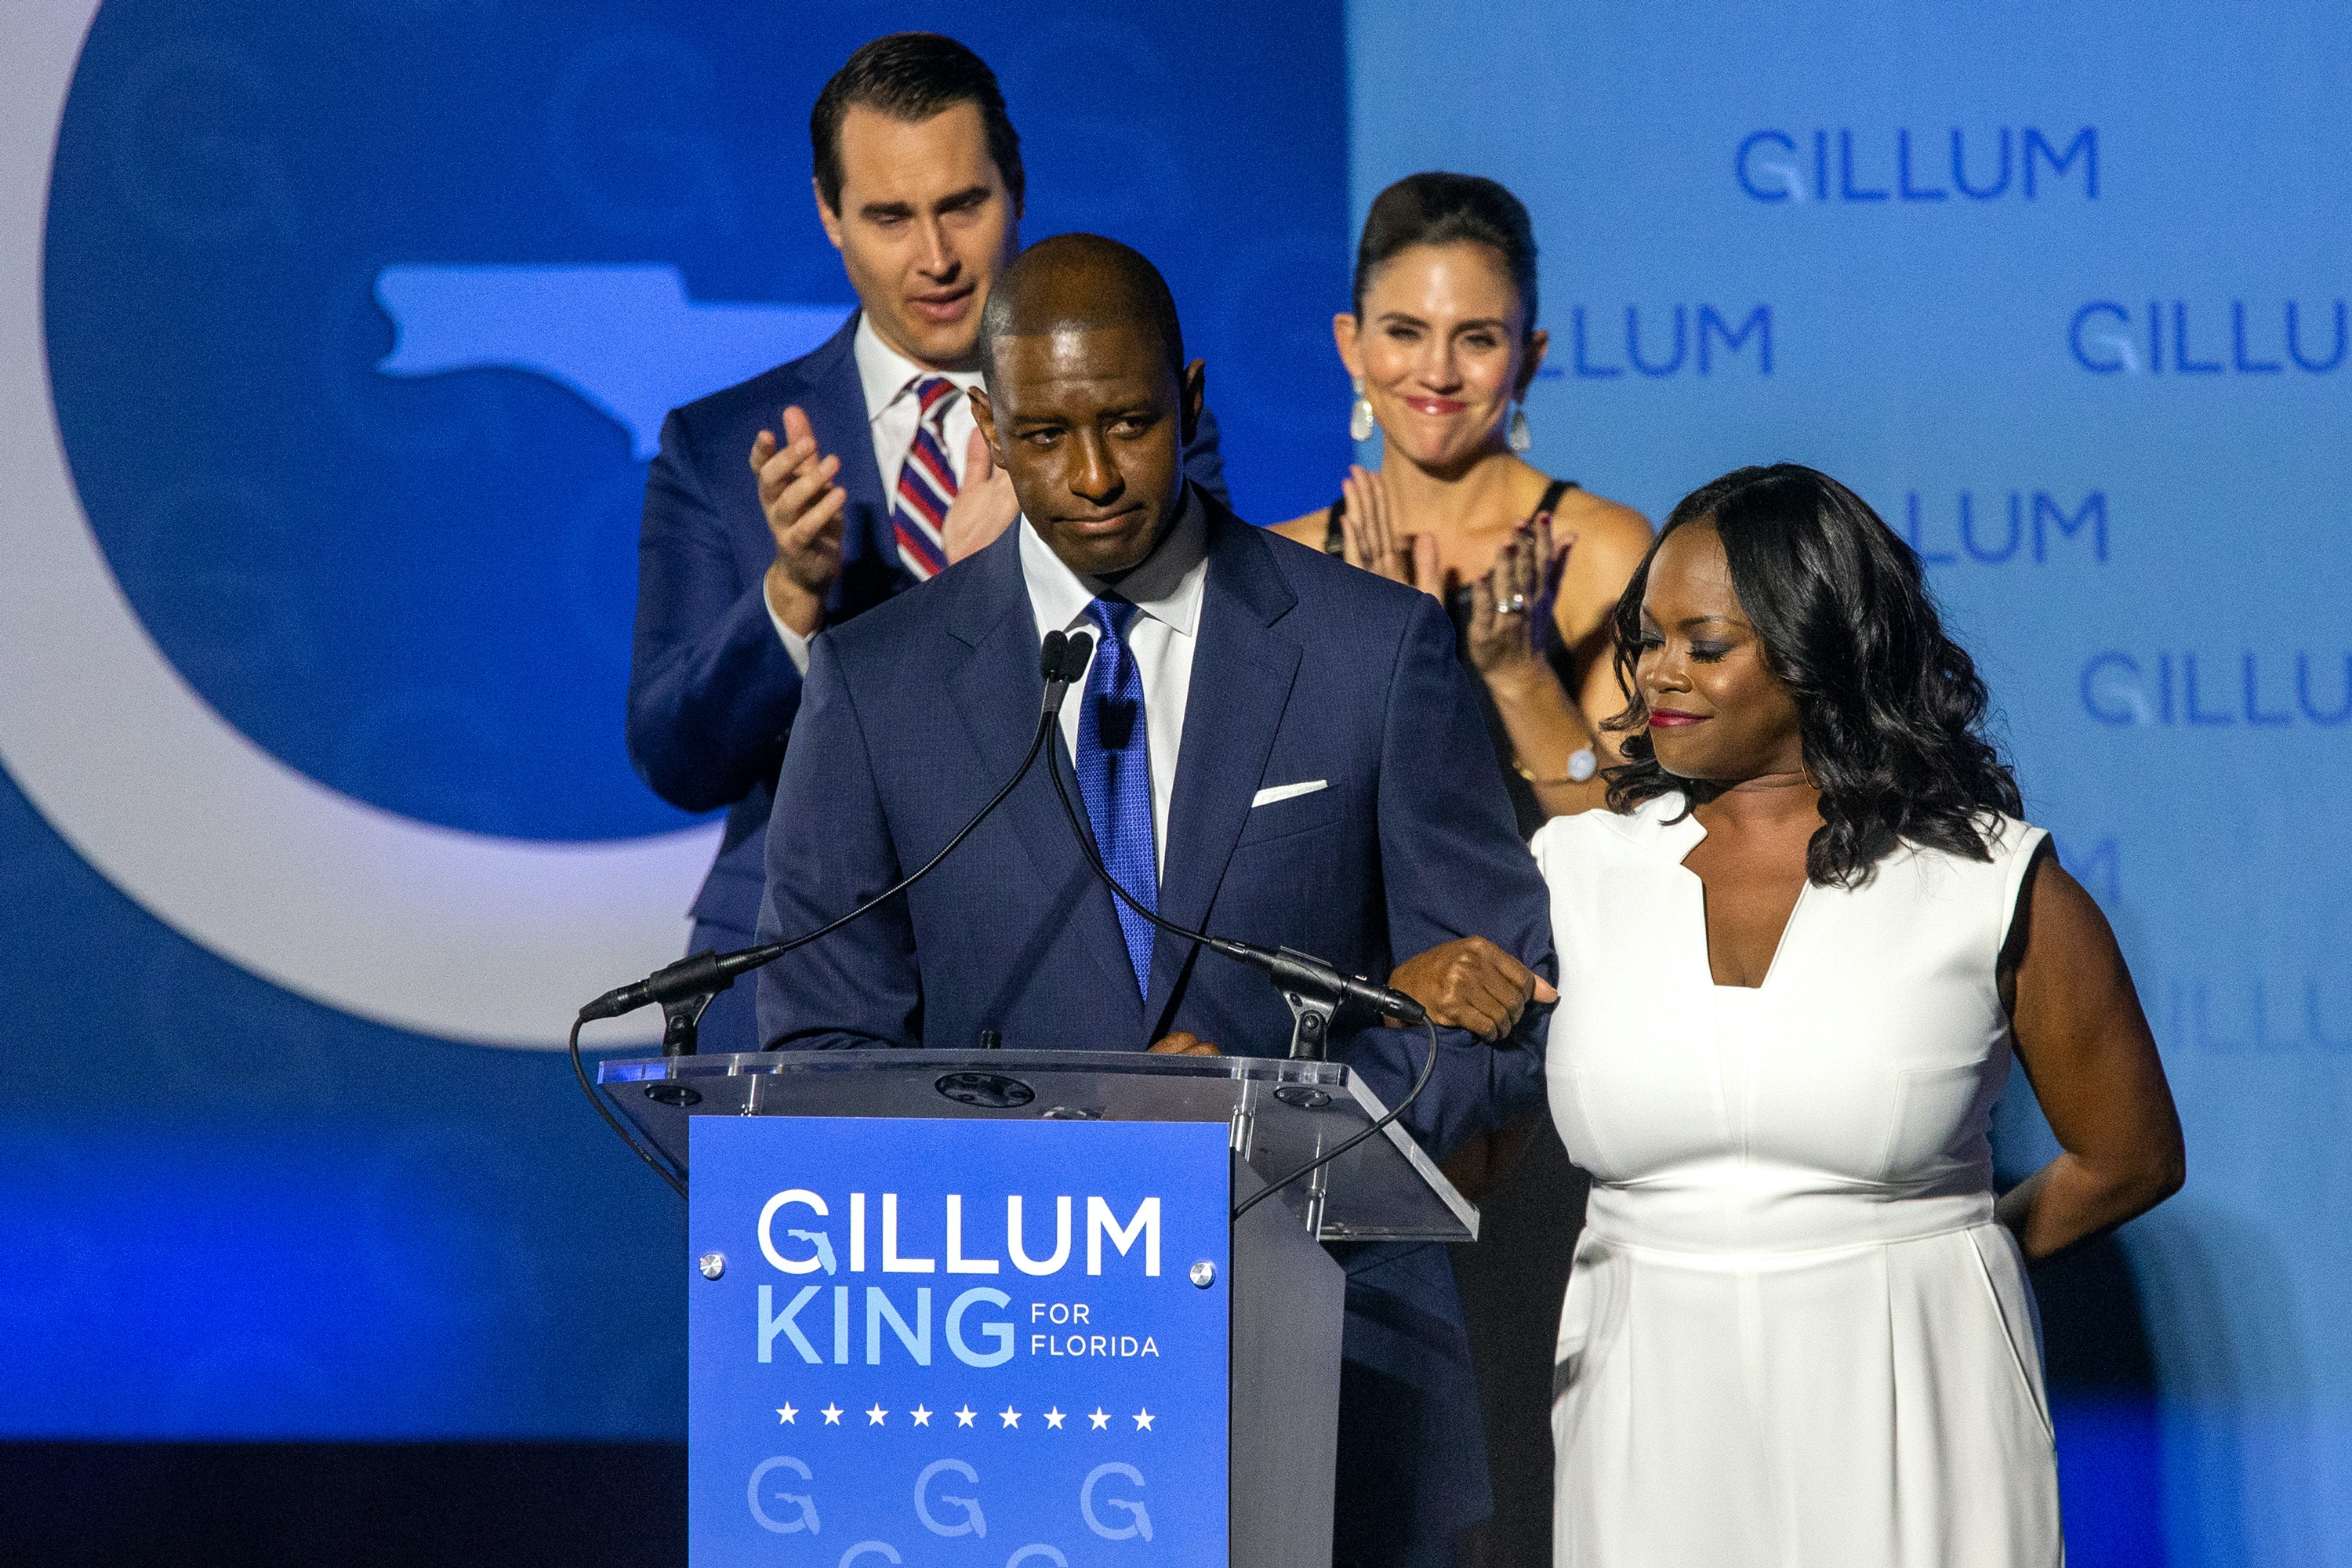 TALLAHASSEE, FL - NOVEMBER 06:  Democratic gubernatorial candidate Andrew Gillum gives his concession speech November 6, 2018 in Tallahassee, Florida.  Gillum fell short in his bid against Republican Ron DeSantis. (Photo by Mark Wallheiser/Getty Images)